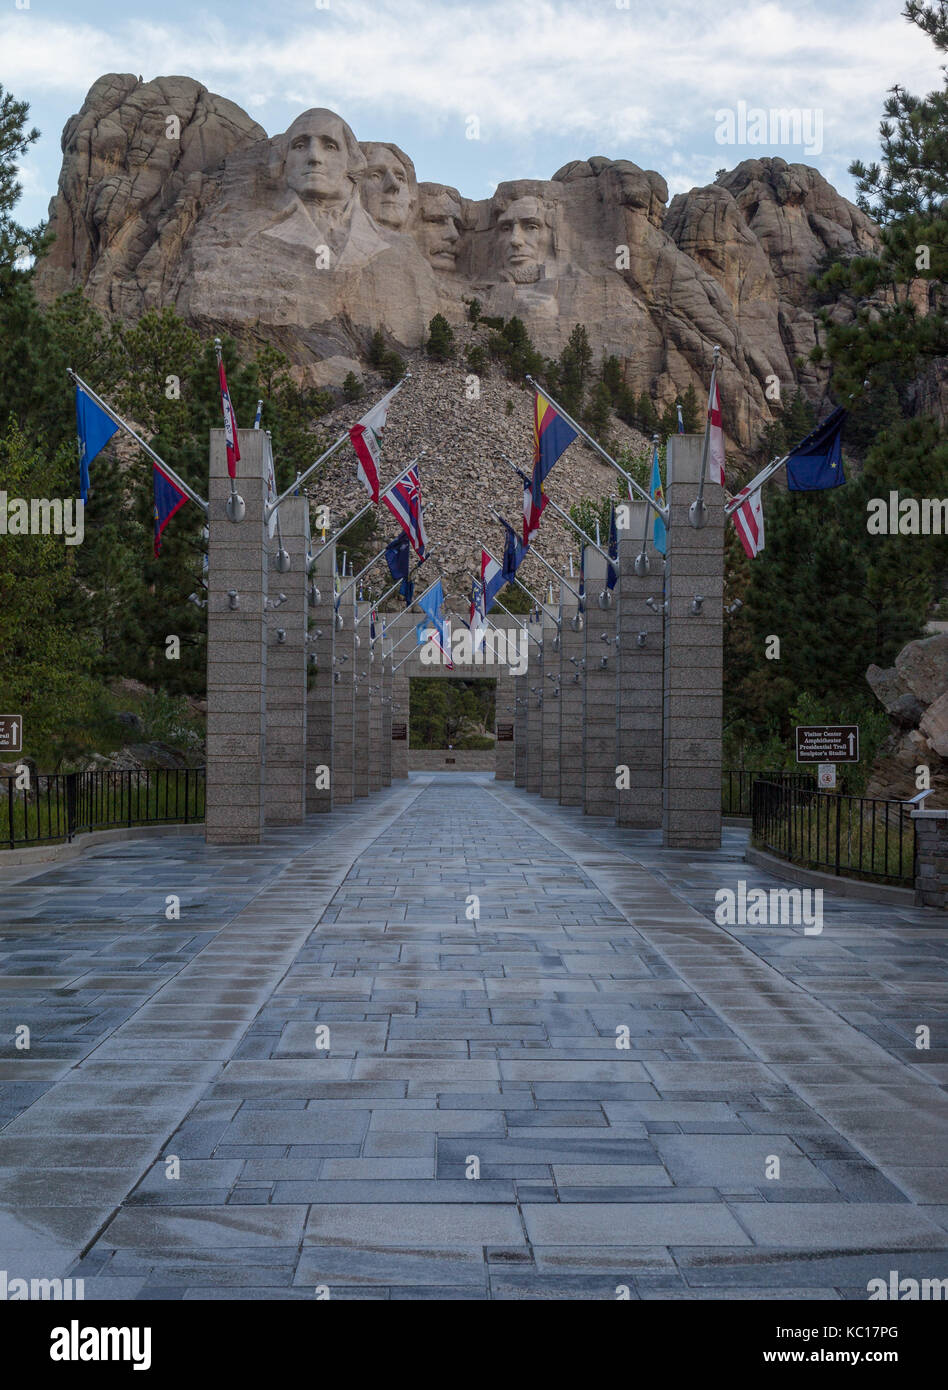 deserted-walkway-of-state-flags-leading-